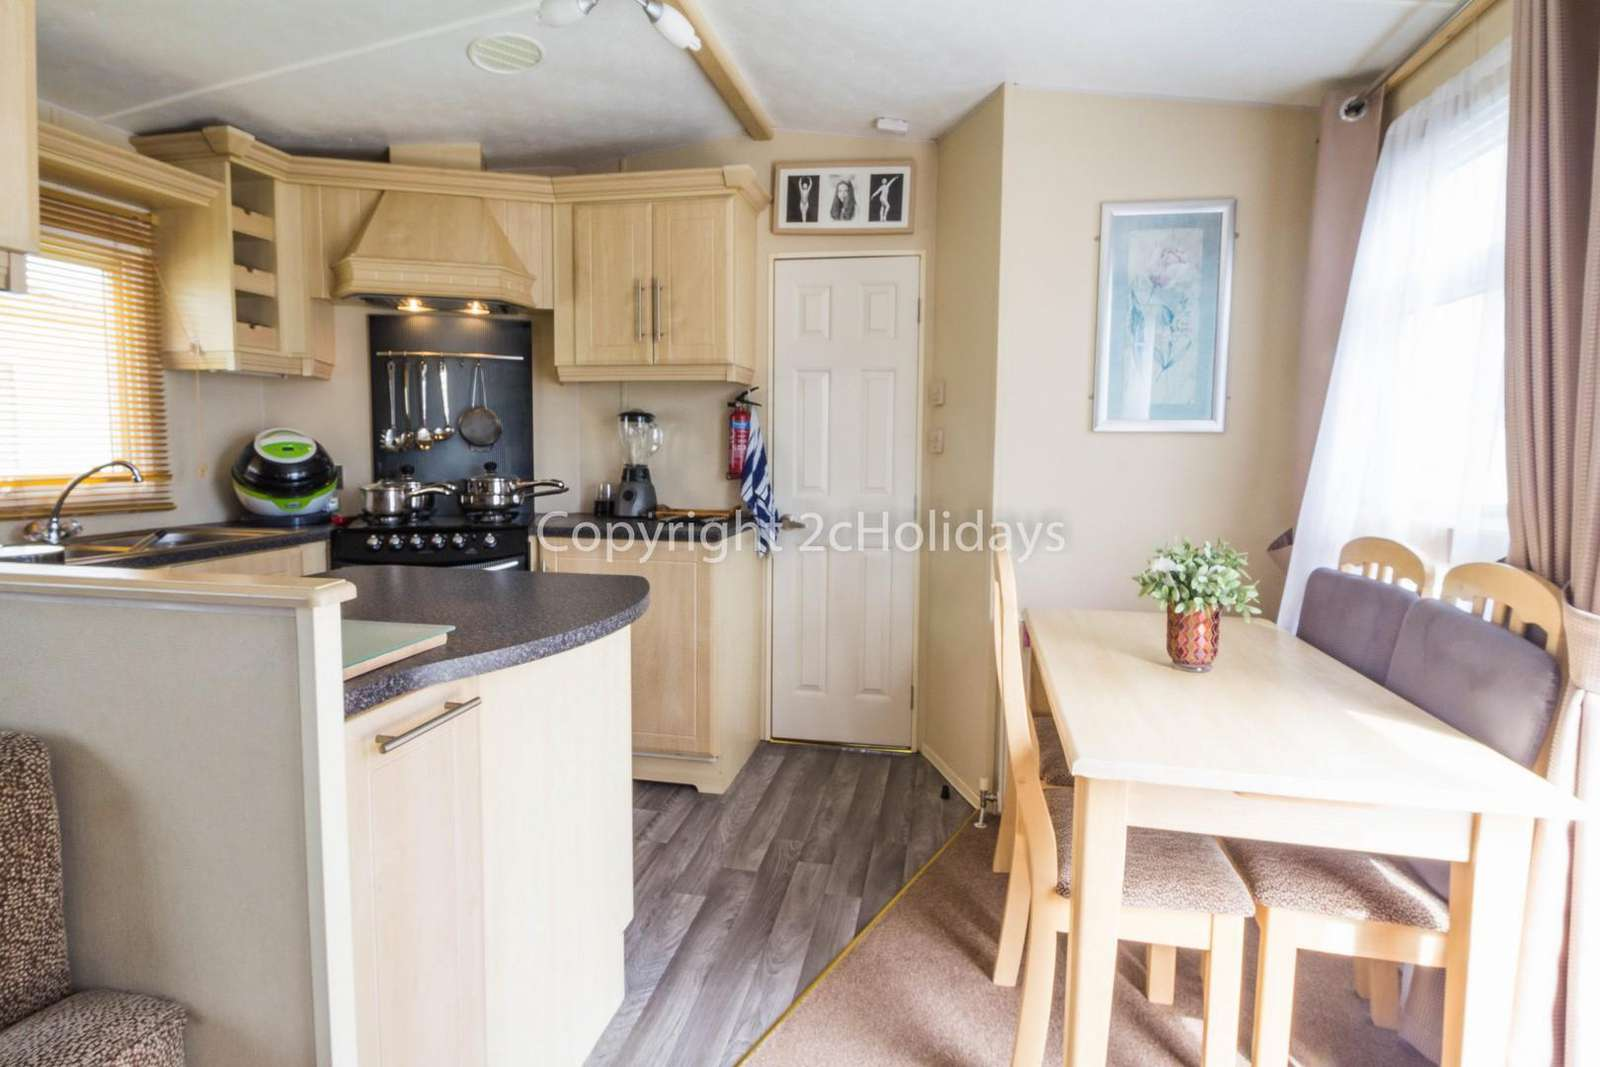 Caister Haven Holiday Park, in Great Yarmouth. Perfect for families.